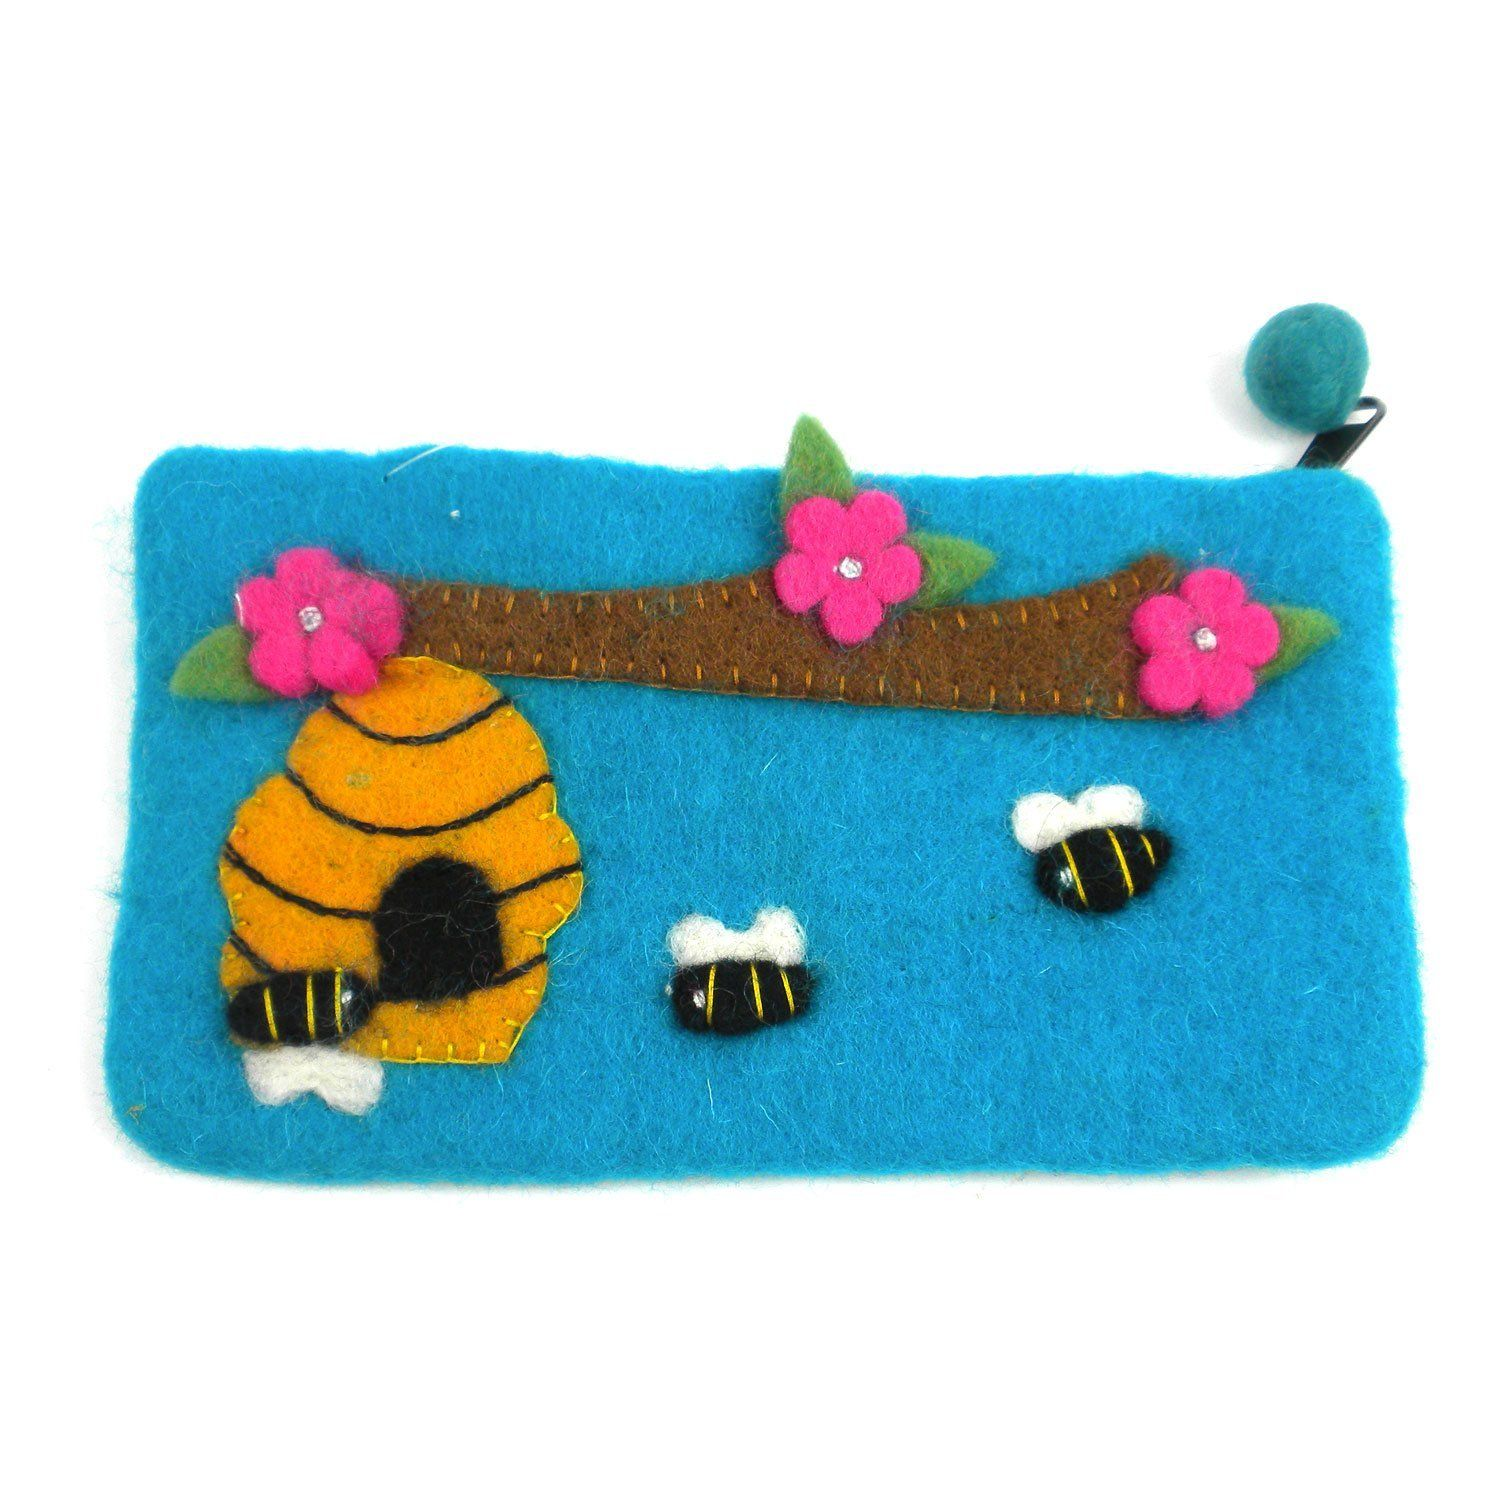 Global Groove P Global Craft Handmade Felt Blue Owl Clutch